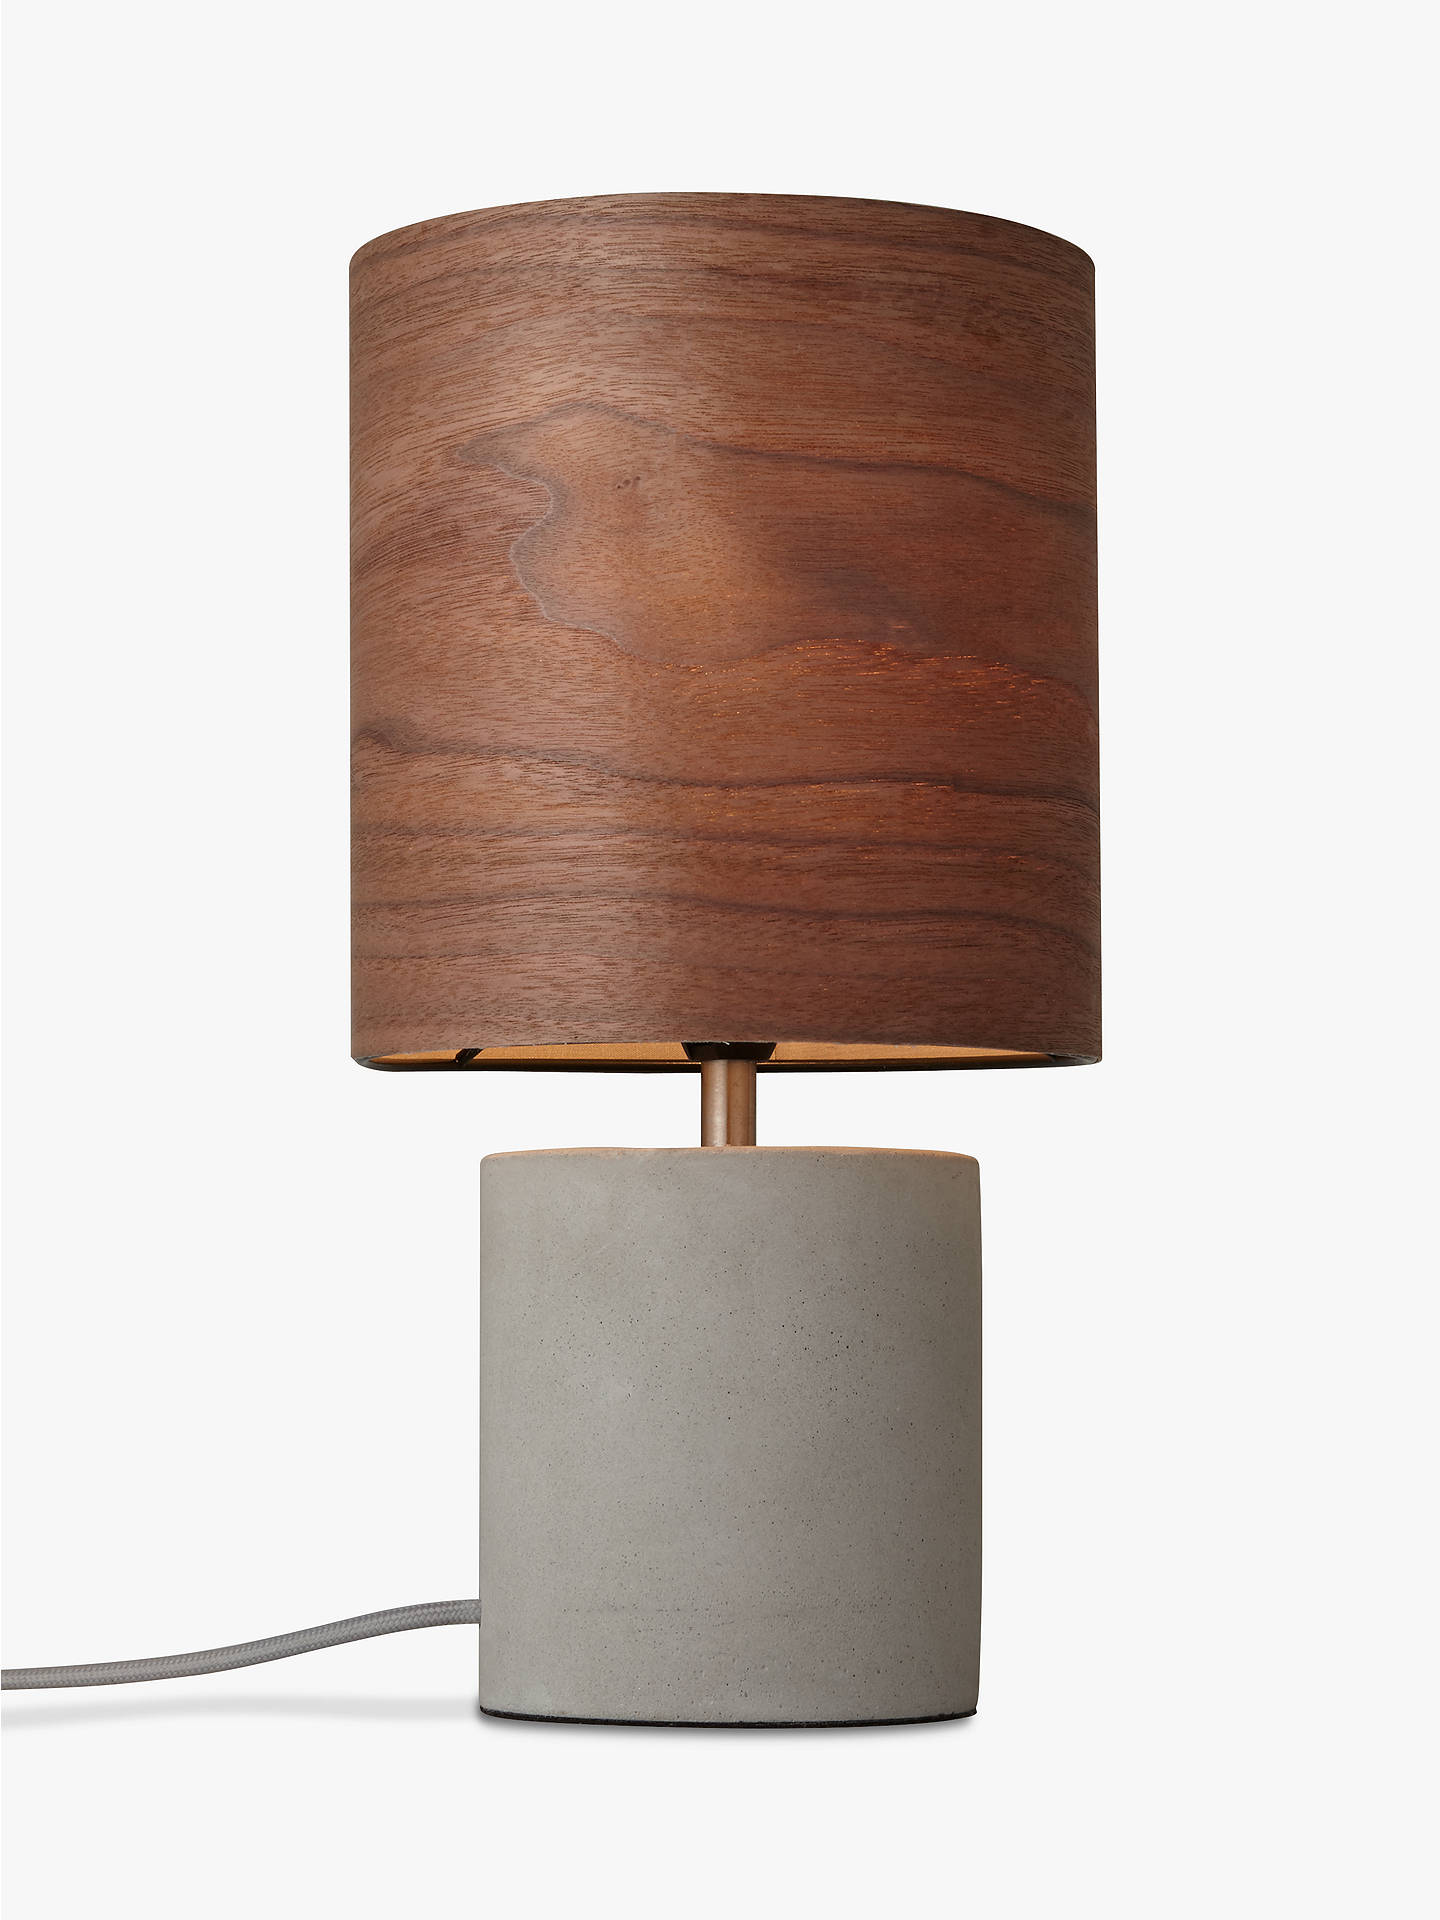 Design project by john lewis no047 table lamp walnut veneer at buydesign project by john lewis no047 table lamp walnut veneer online at johnlewis aloadofball Choice Image